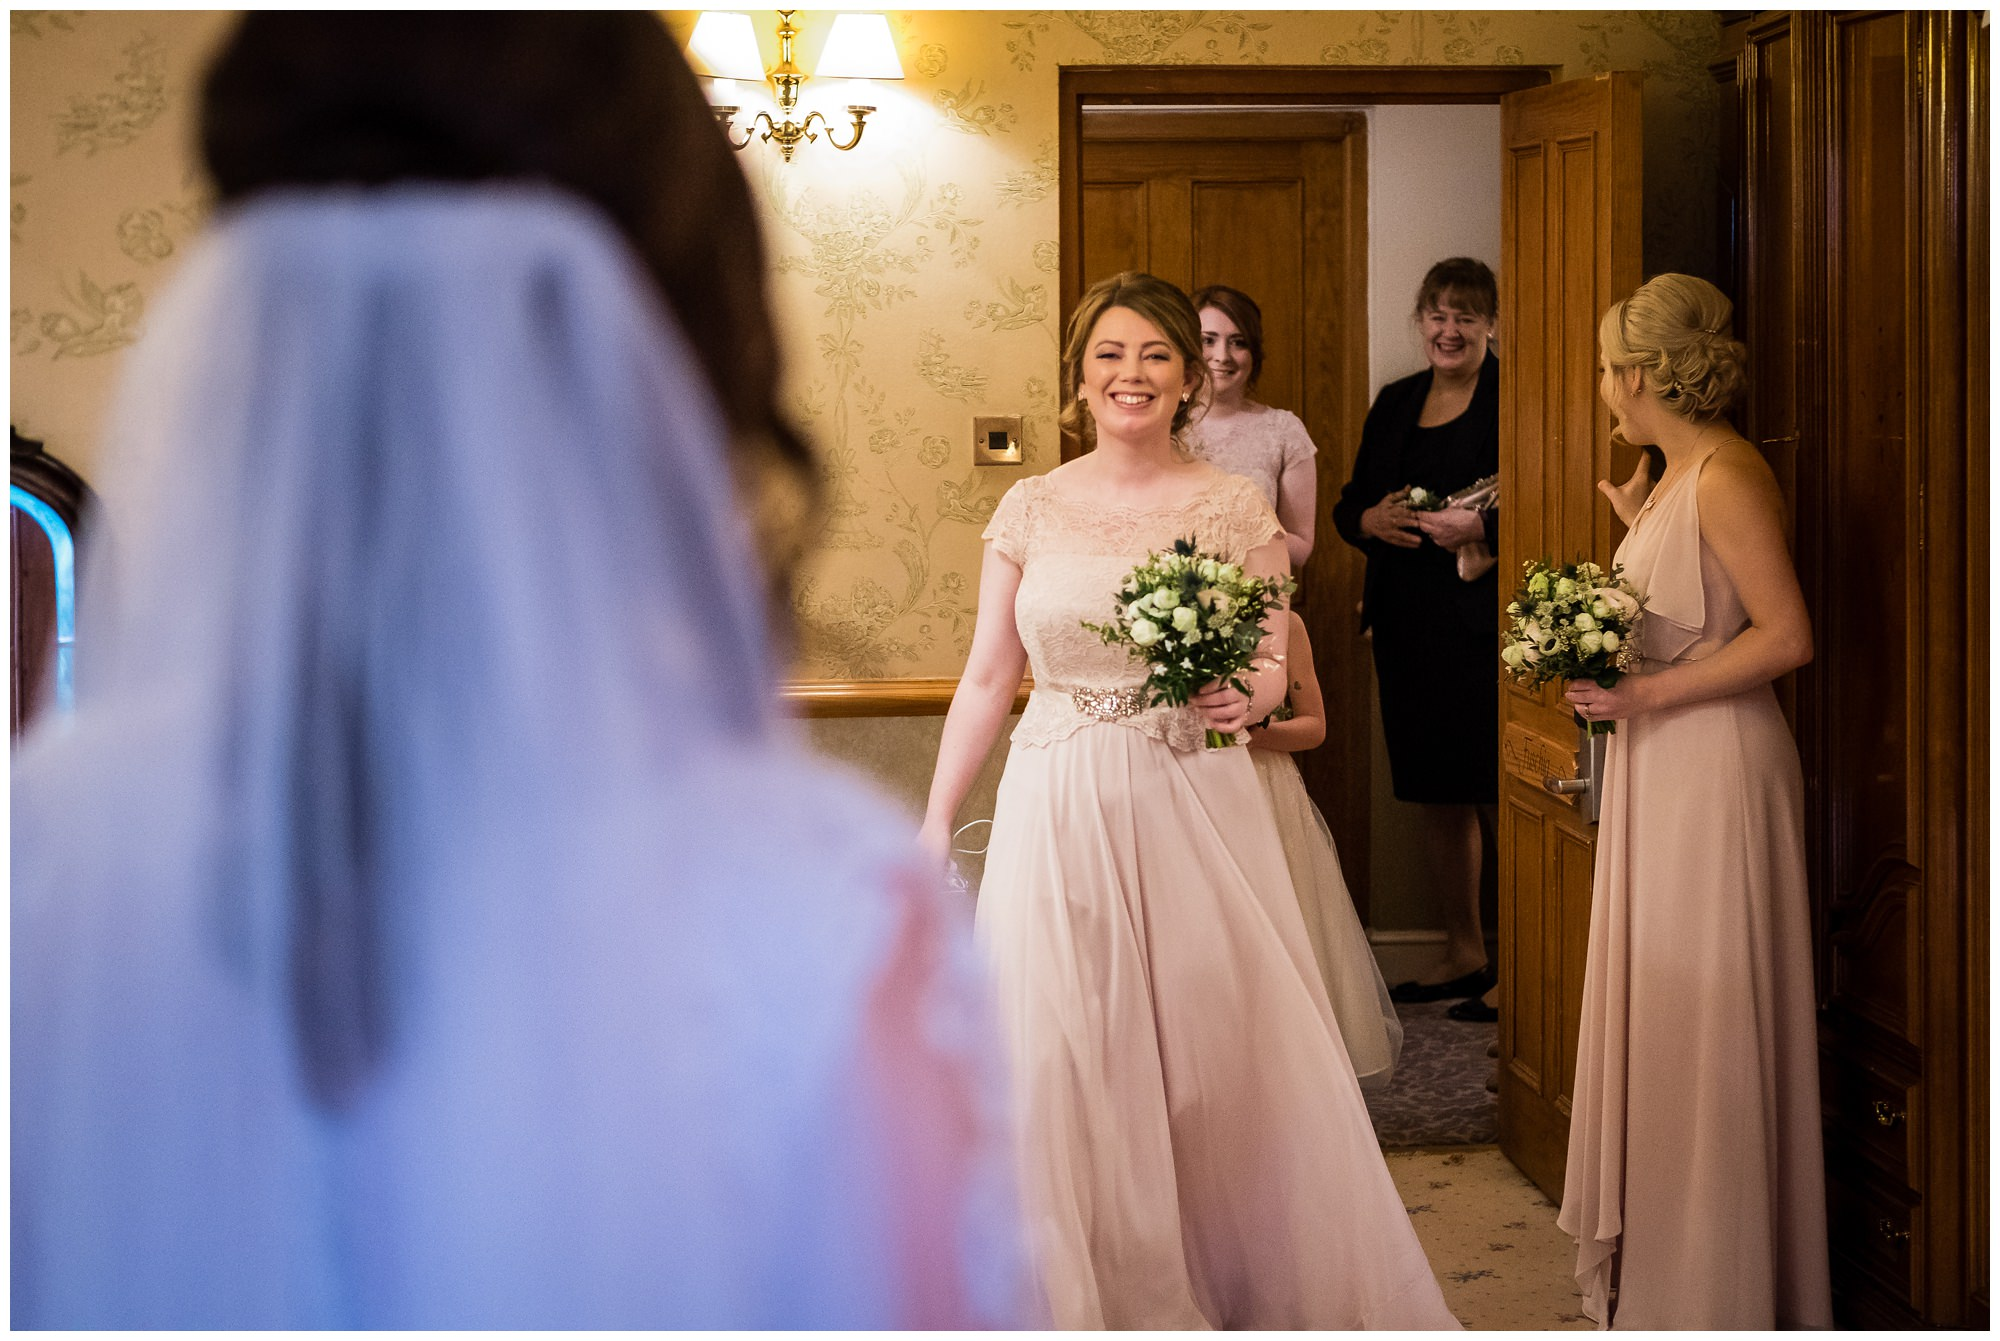 bridesmaids seeing bride for first time in dress